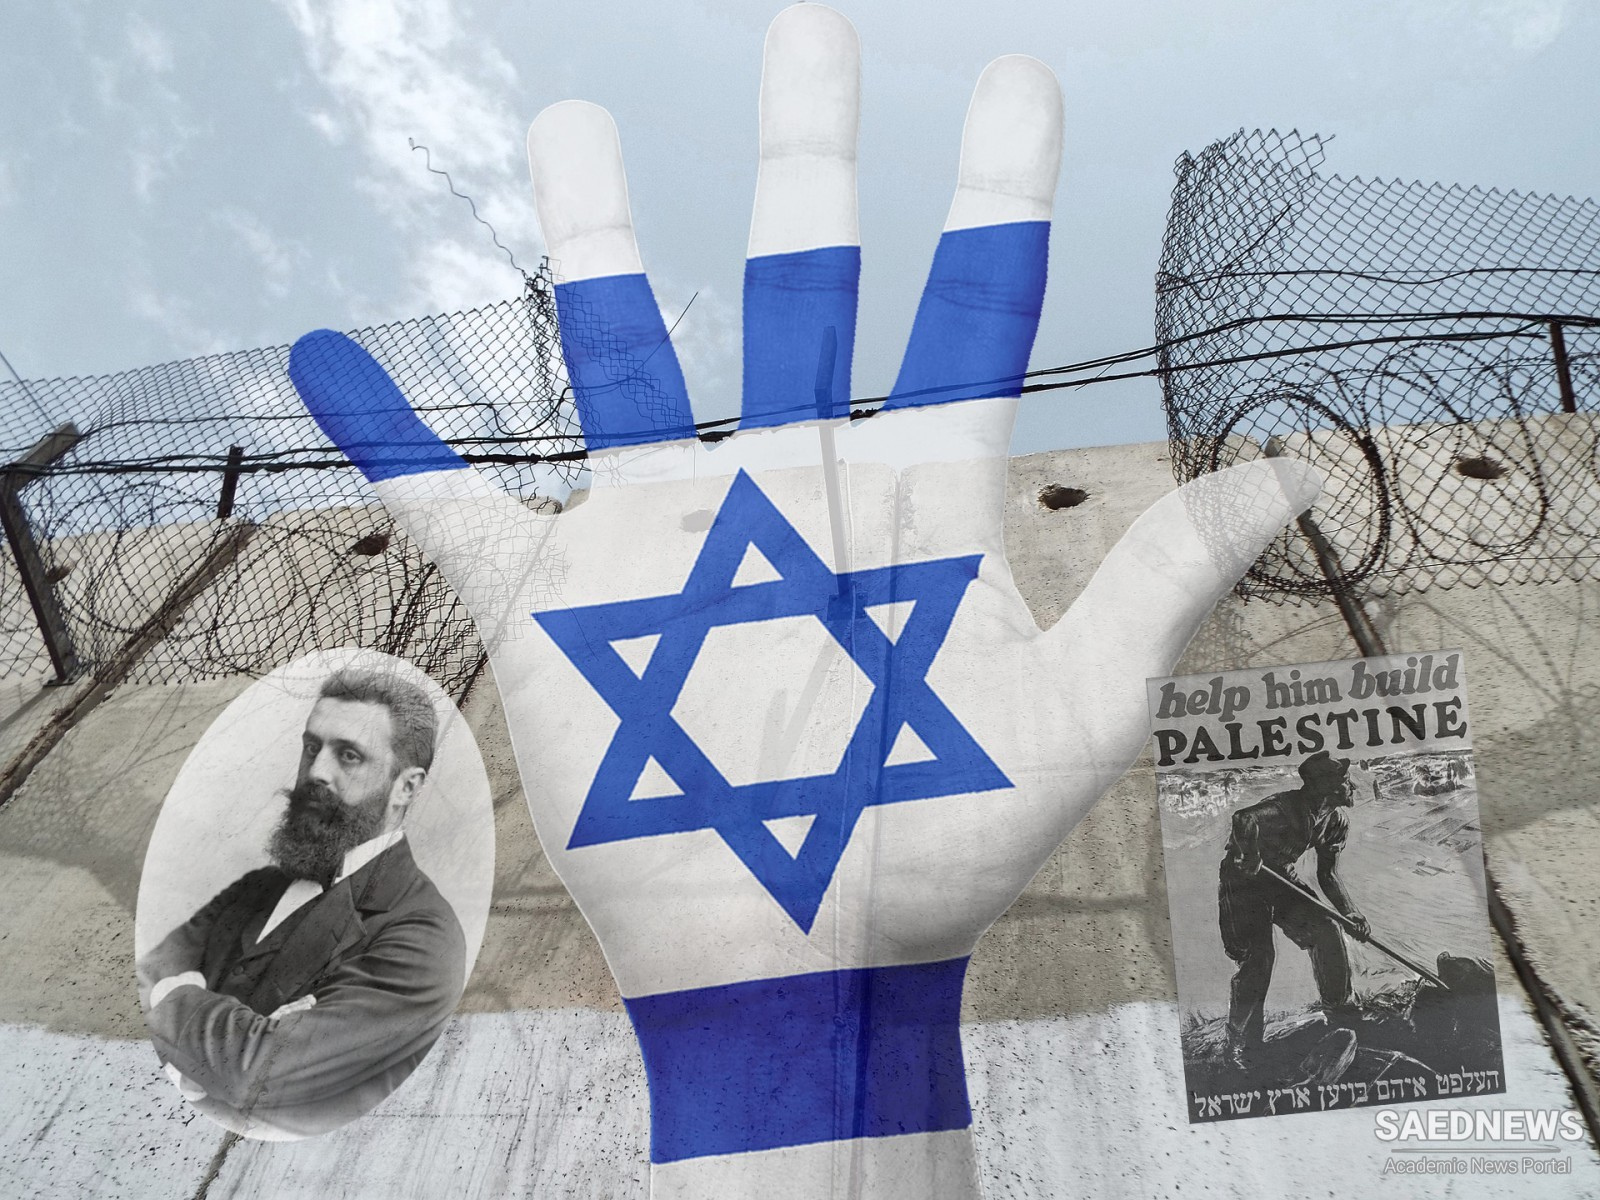 Zionist Ambitions and Palestinian Suffering